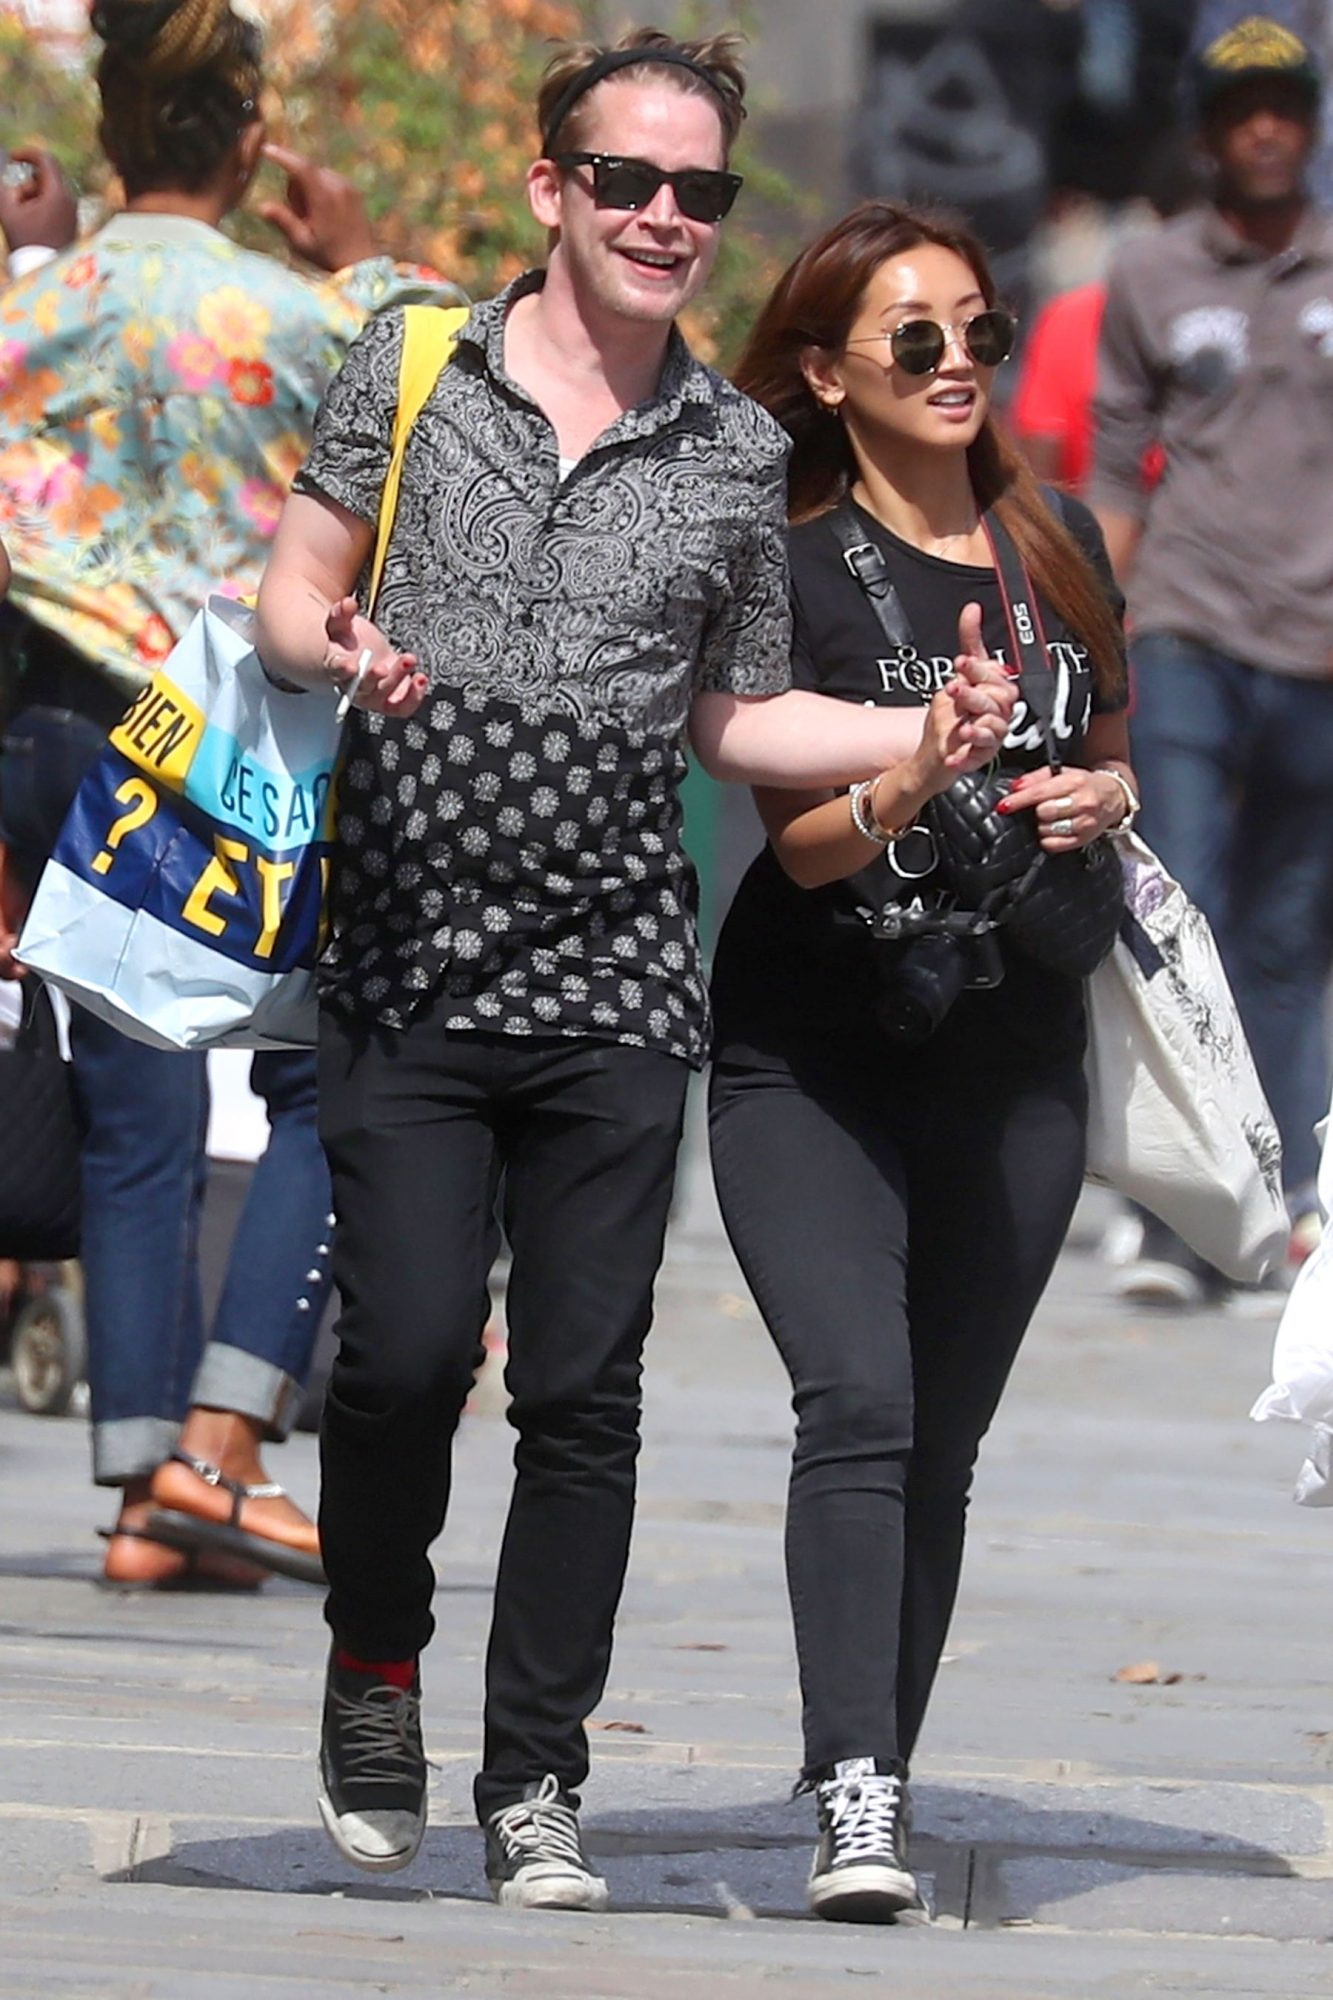 *EXCLUSIVE* Macaulay Culkin wears a band on his ring finger as he is spotted looking loved up with Brenda Song in Paris